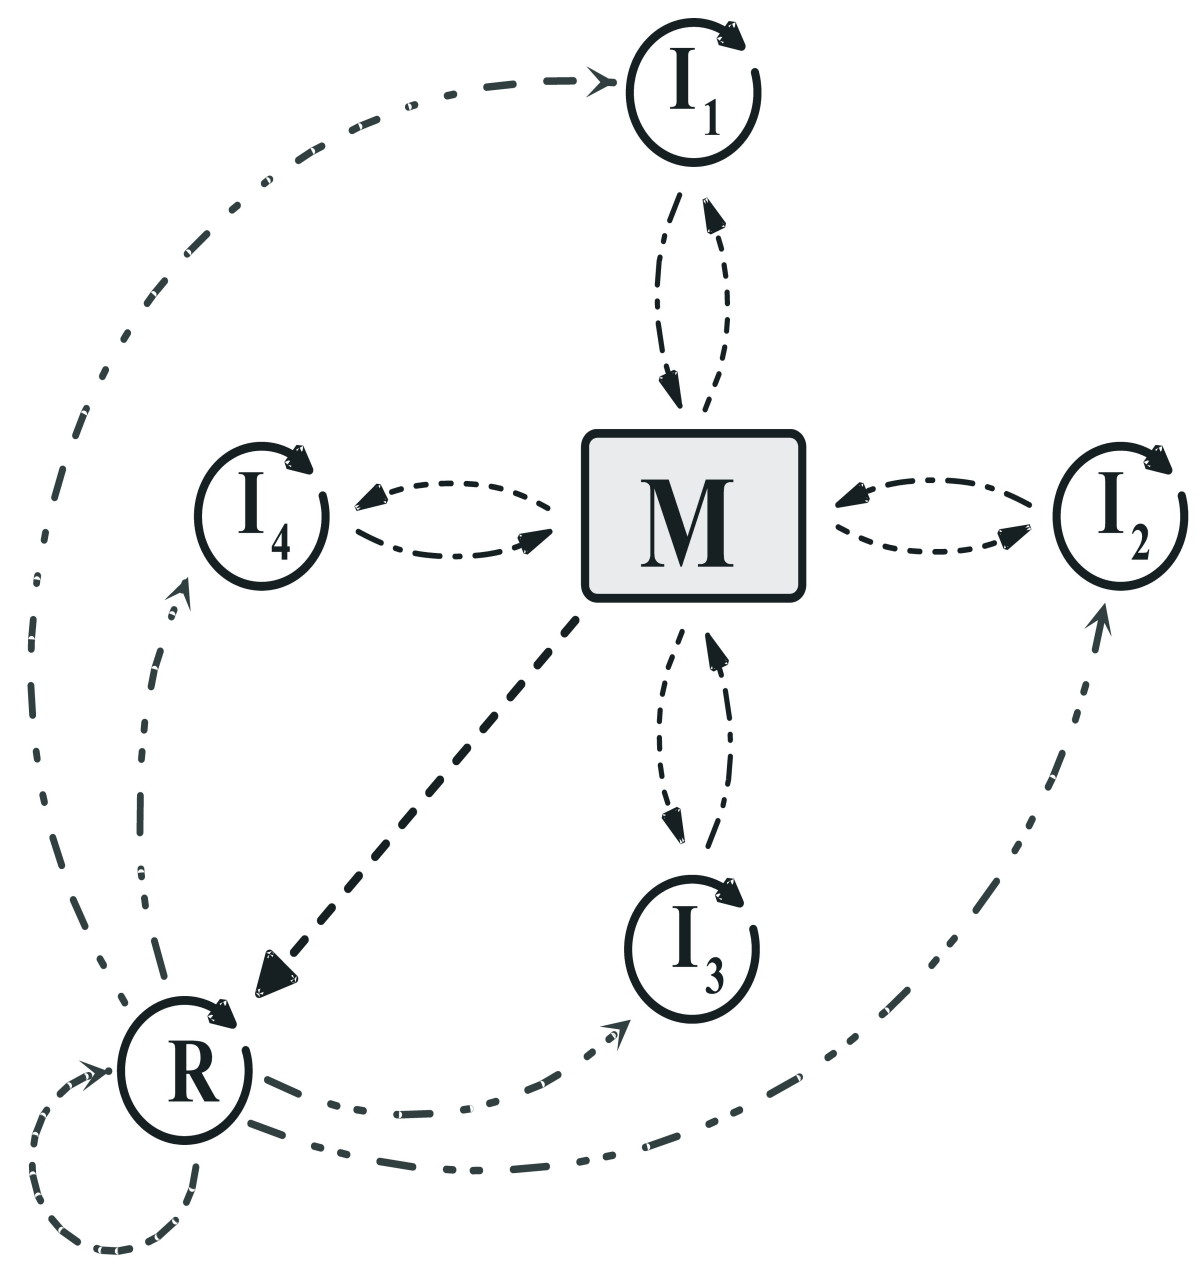 https://static-content.springer.com/image/art%3A10.1186%2F1471-2148-8-267/MediaObjects/12862_2008_Article_836_Fig2_HTML.jpg